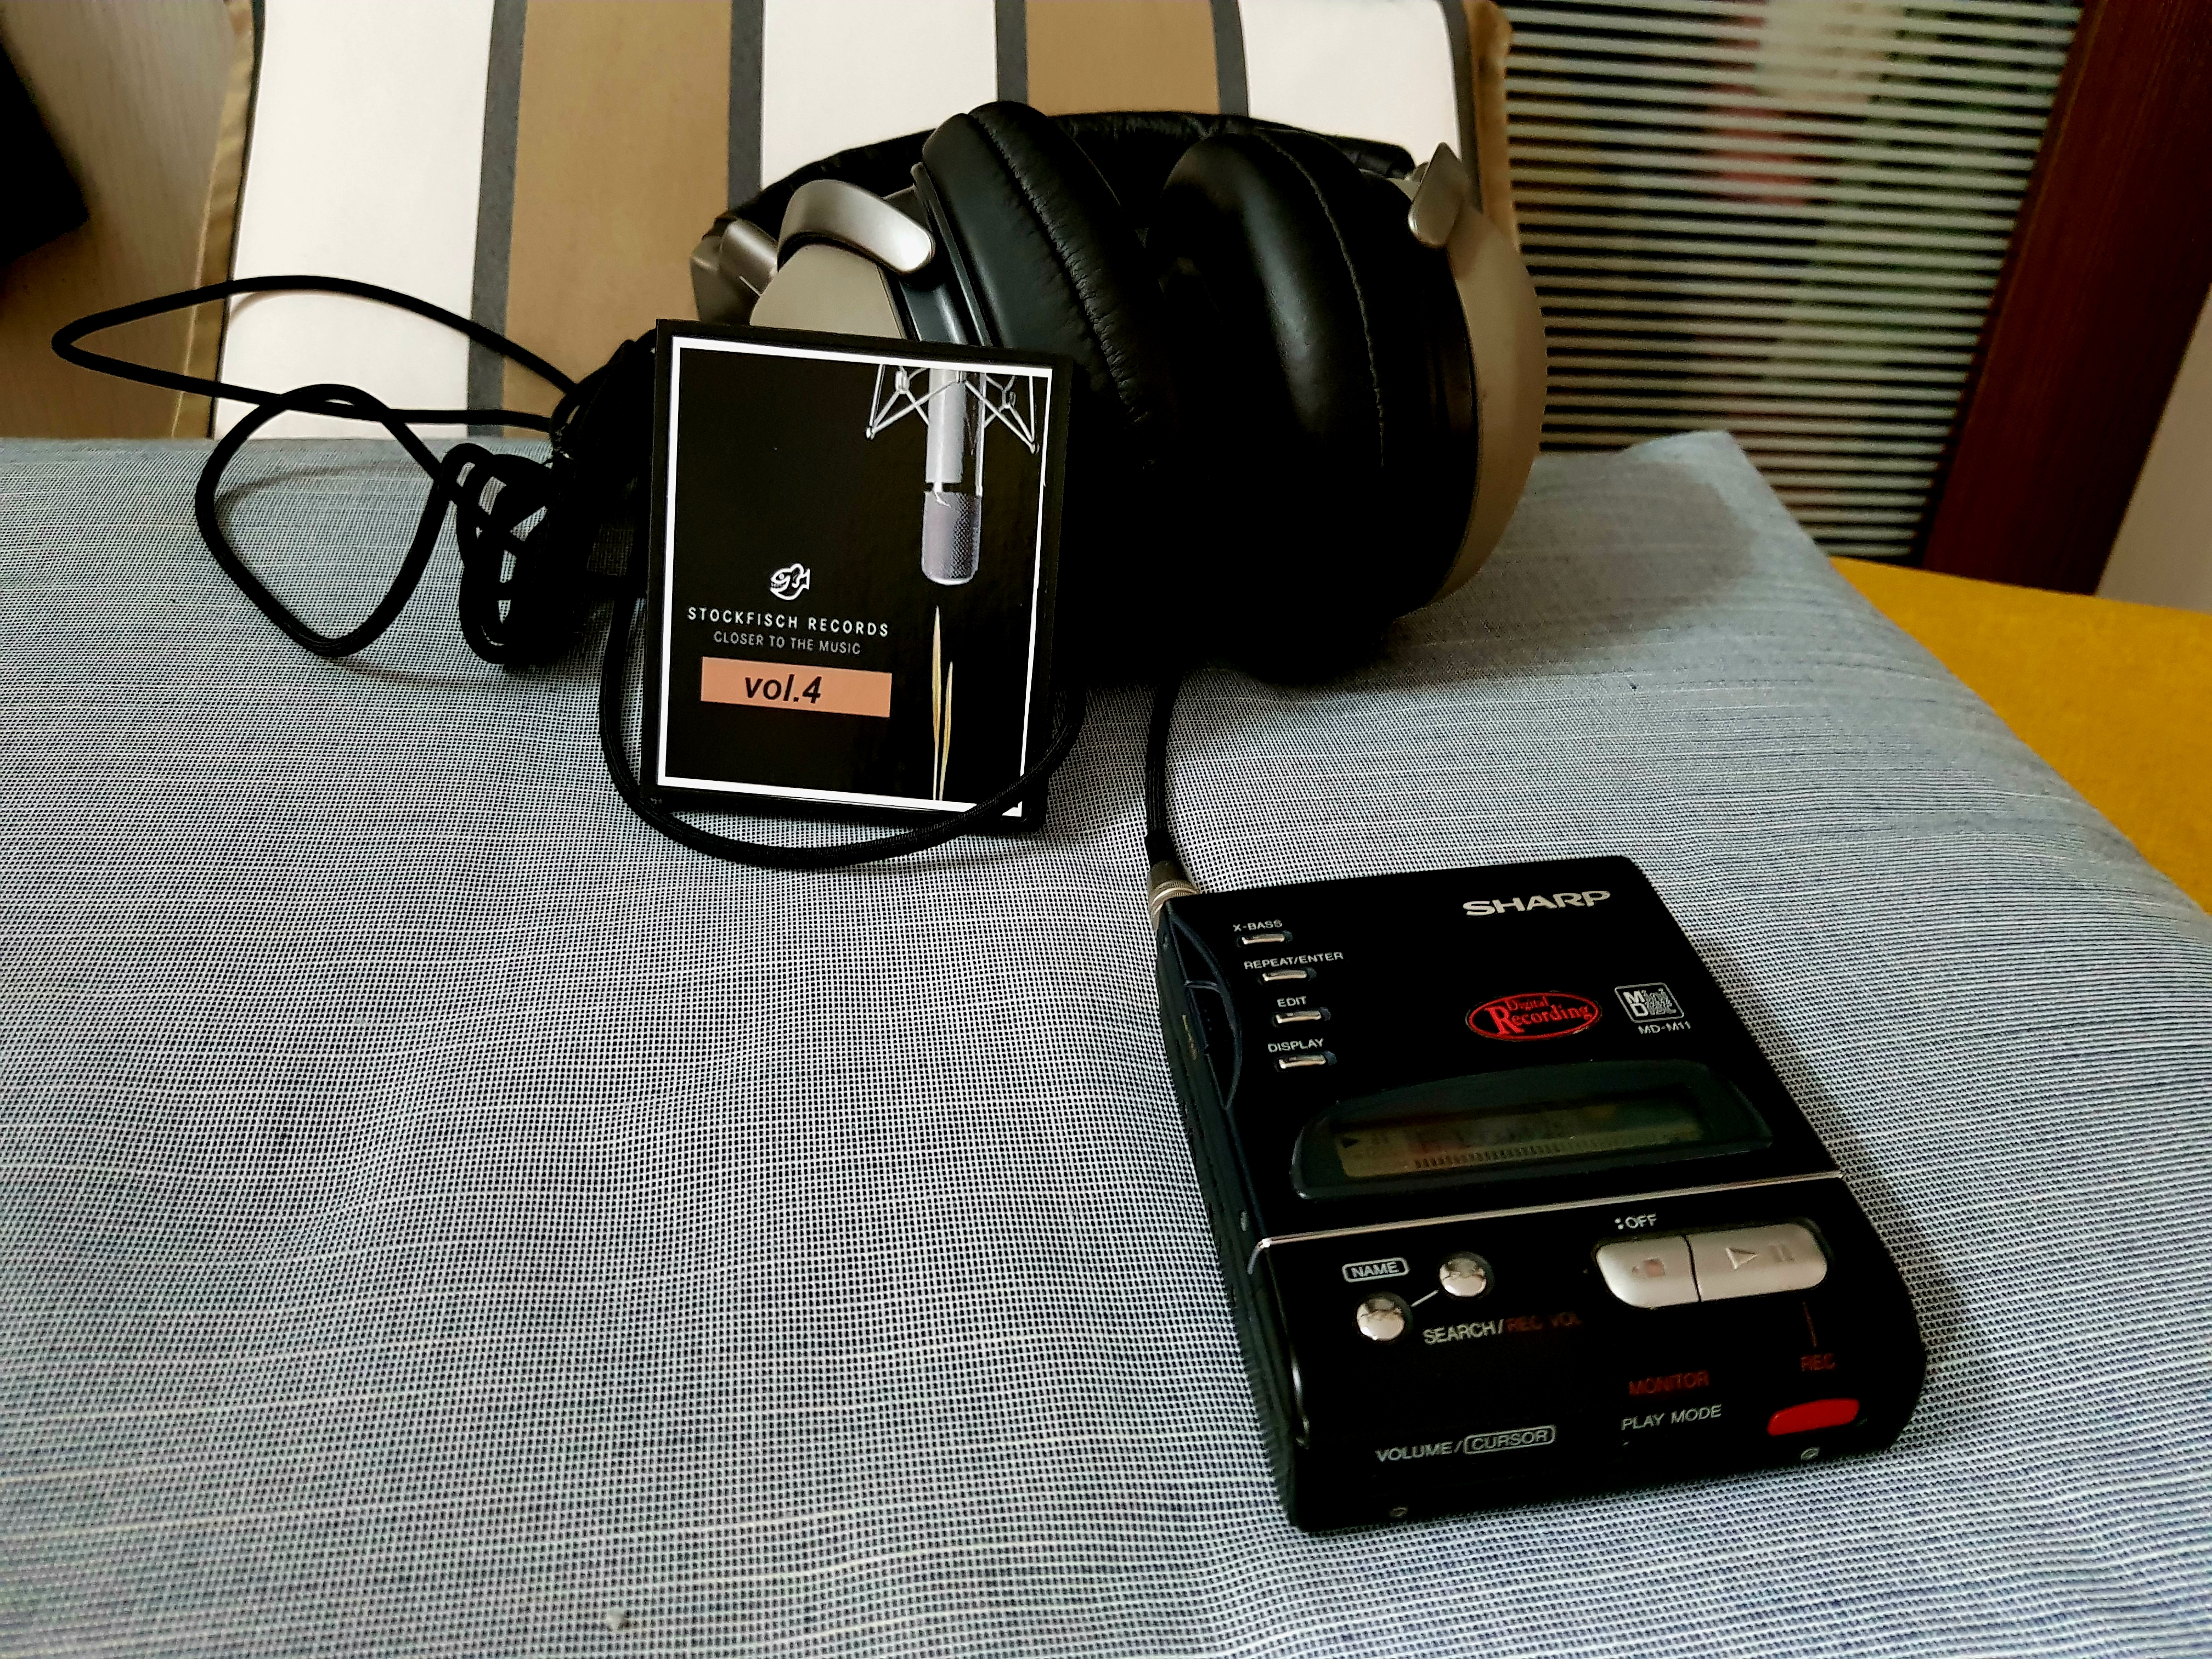 Pictures Of Your Portable Rig Part Xvi Page 1762 Headphone 26416electricpanelpanelwiringjpg Cd3ksharp Md 20180913 162000